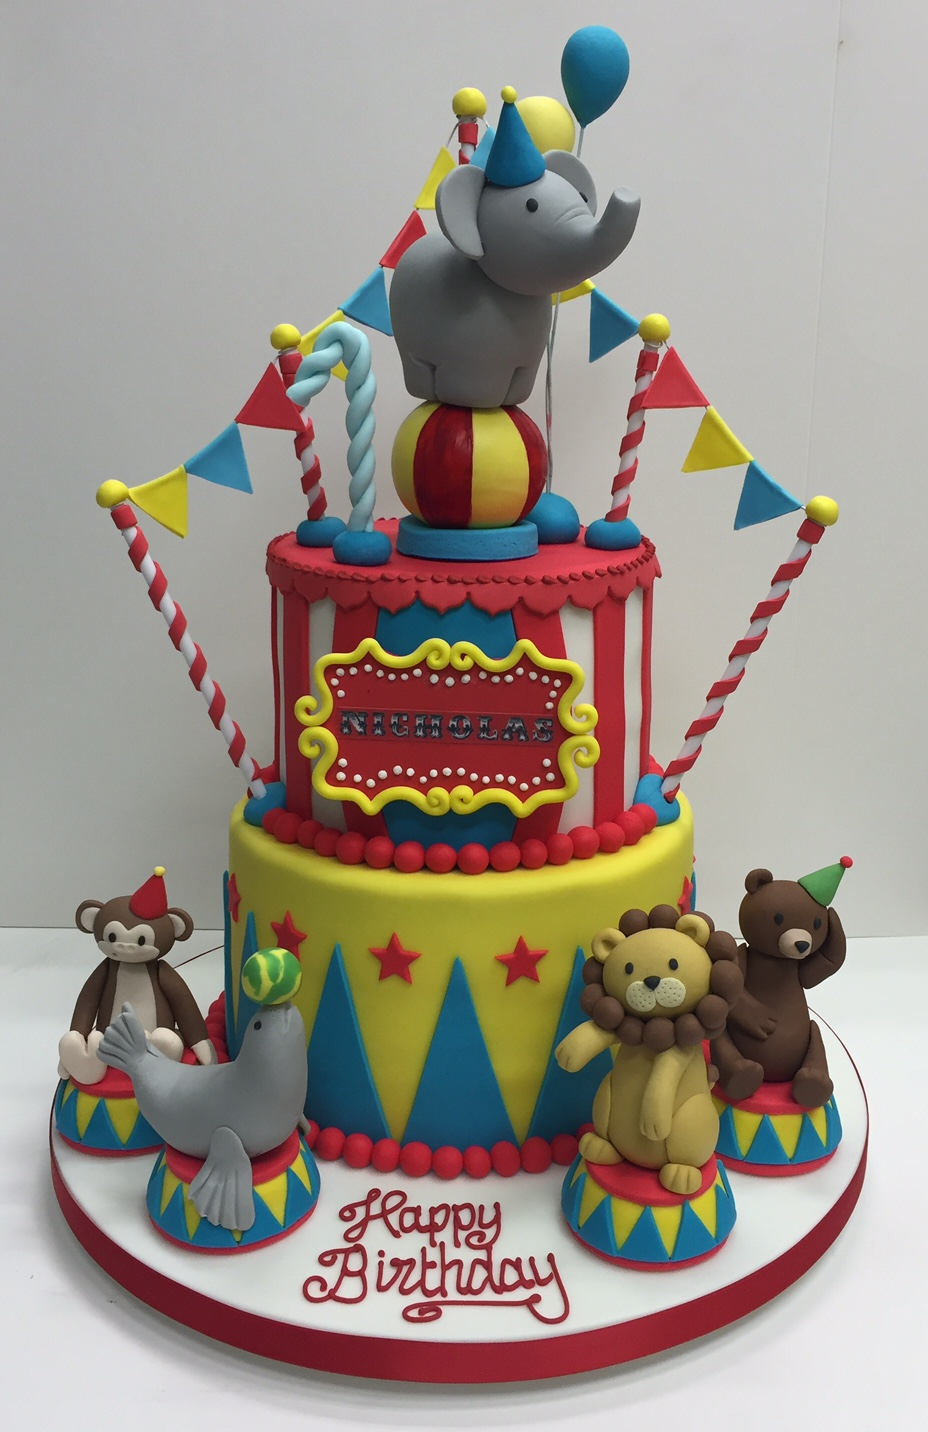 Groovy Circus Themed Childrens Birthday Party Cakes By Robin Personalised Birthday Cards Veneteletsinfo